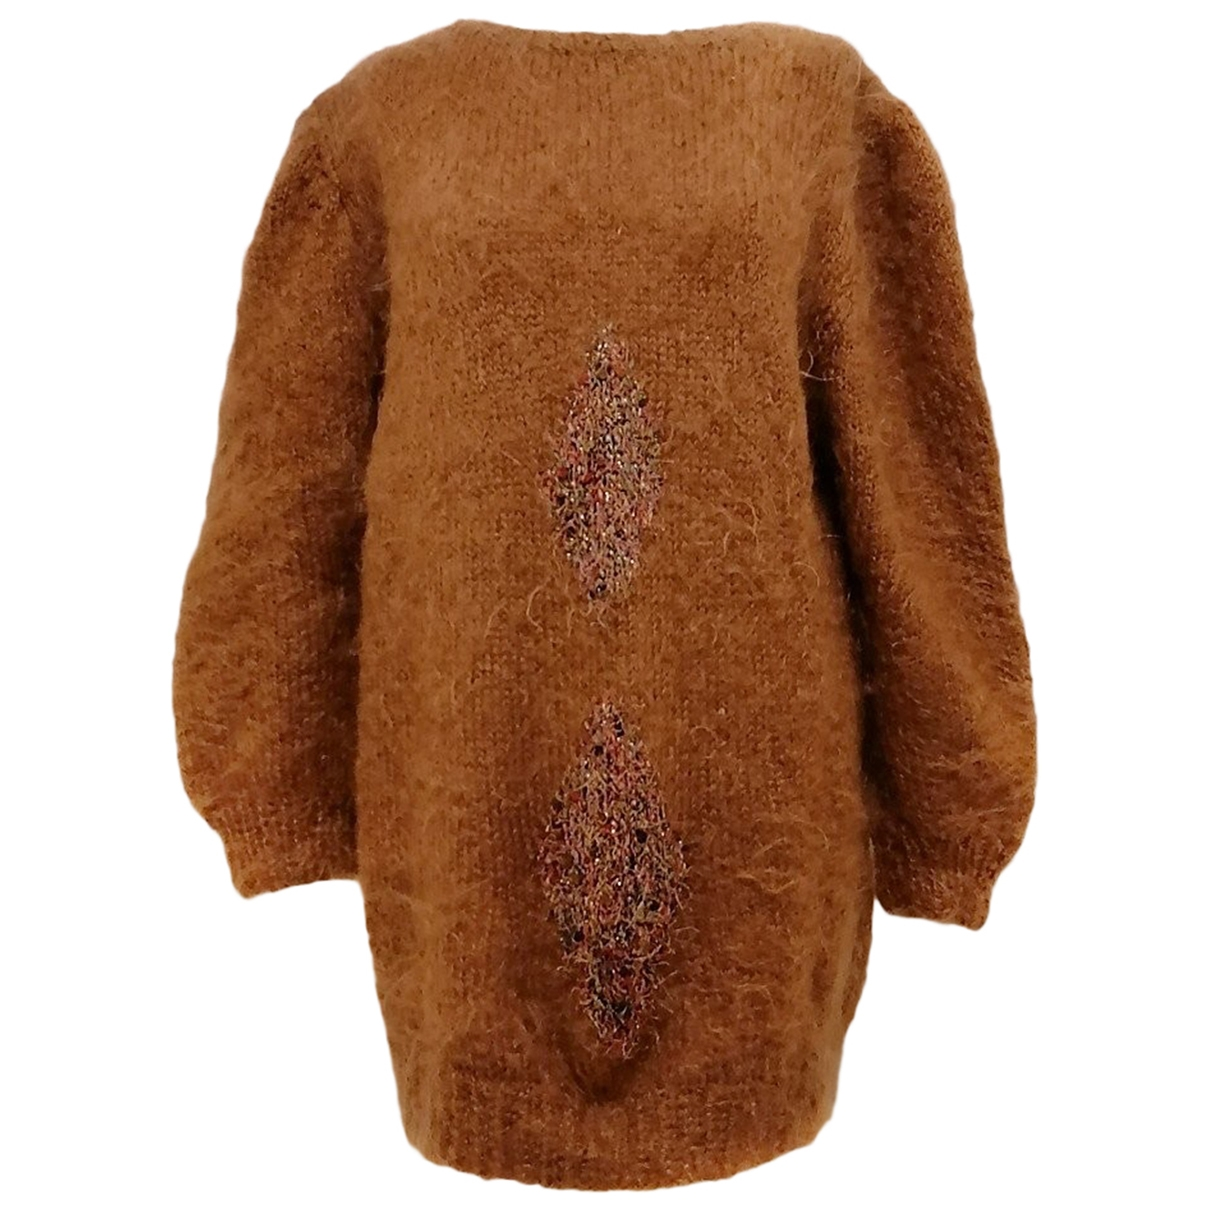 Non Signé / Unsigned Hippie Chic Brown Wool dress for Women One Size IT